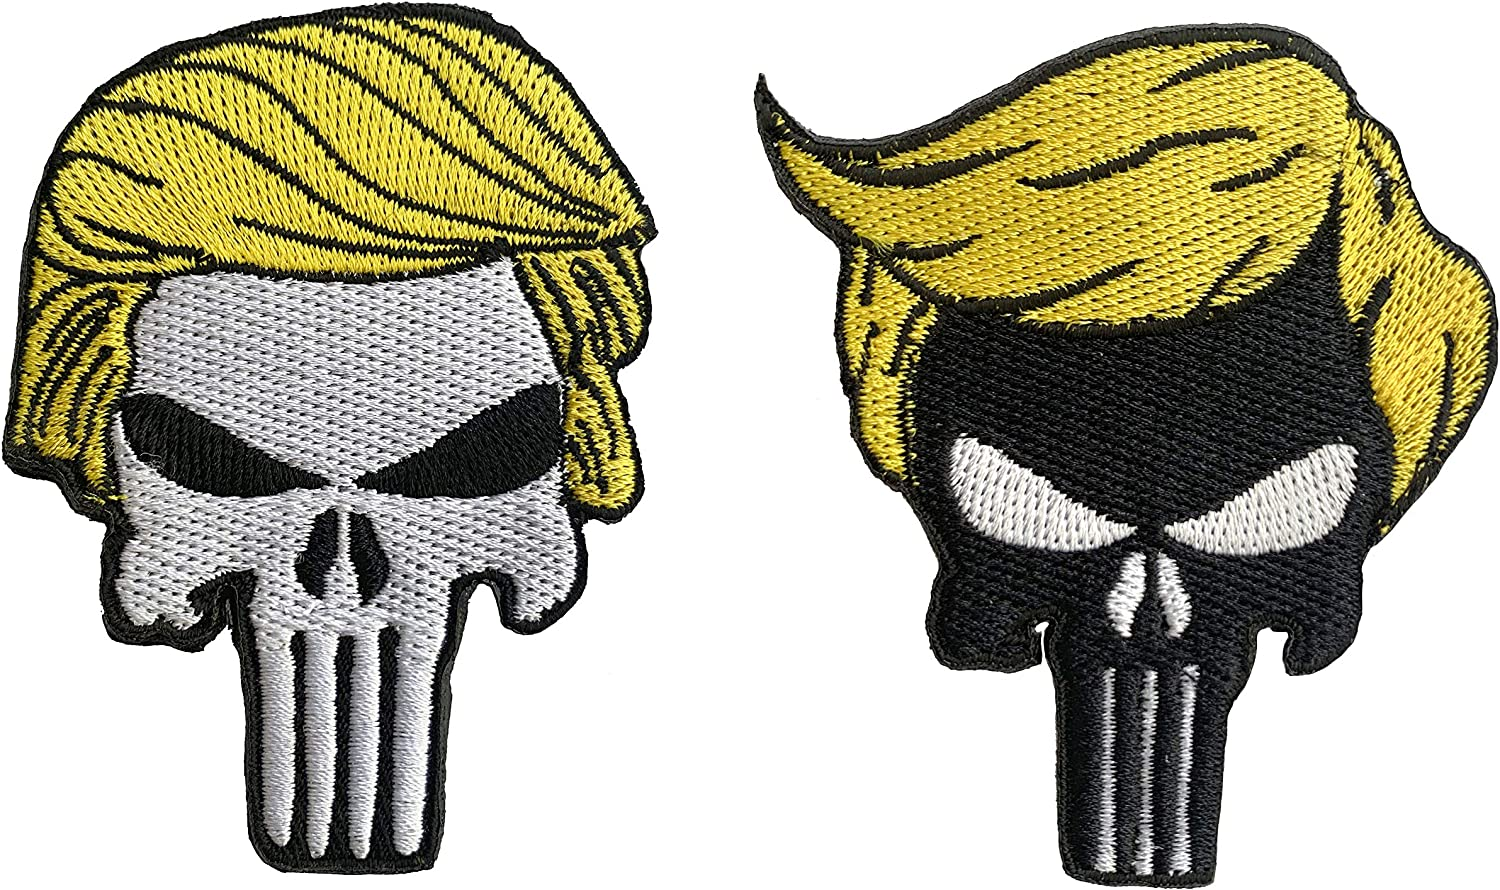 Trump Skull Patch Sew or Iron Pres Donald on Patches 2021 new OFFicial